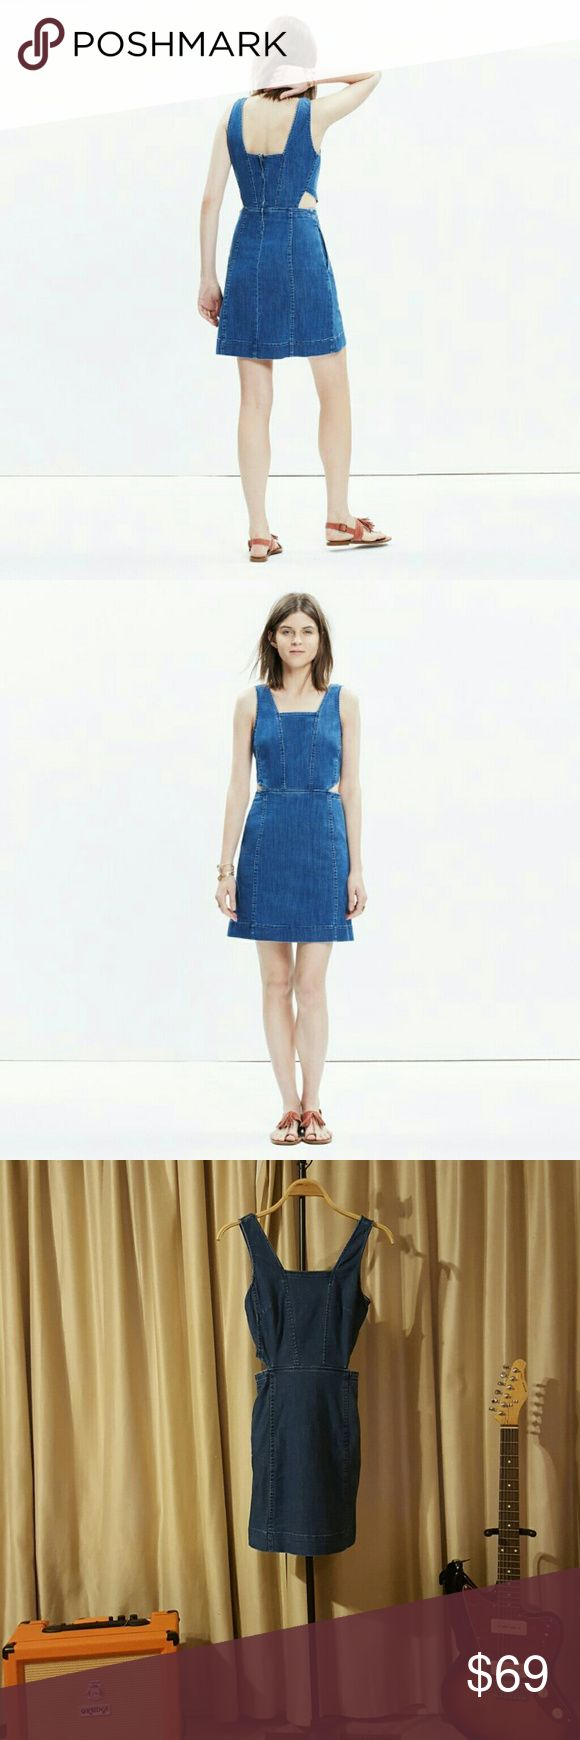 """Madewell Denim Cutout Dress PRODUCT DETAILS When you can't decide between jeans and a dress, choose both. Like this fresh denim mini with low-key cutouts that's giving us definite throwback vibes.    Waisted. Falls 35 1/8"""" from highest point of bodice. Cotton/Tencel® lyocell/poly/elastane. Machine wash. Import. Item F1493. Madewell Dresses Mini"""